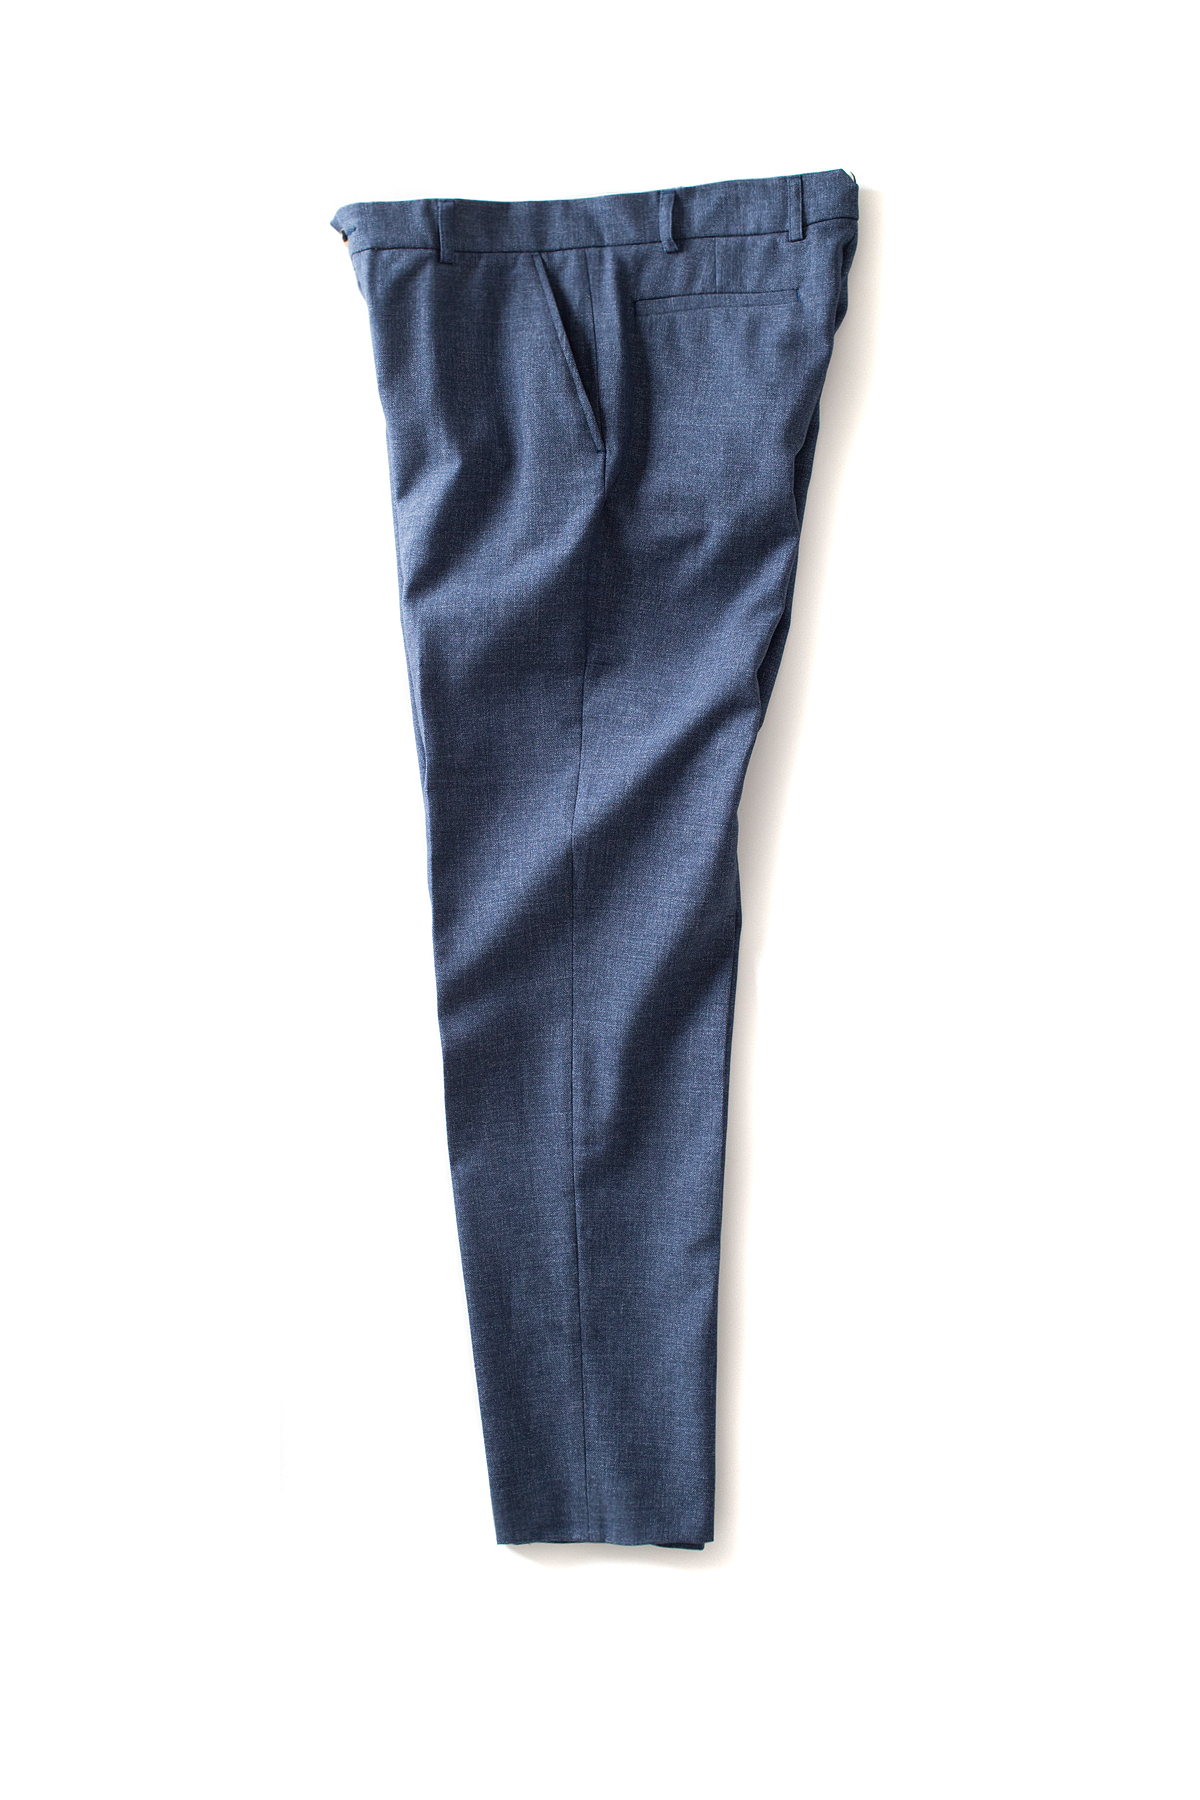 de bonne facture : Flat Front Carrot Trousers (Denim Blue)